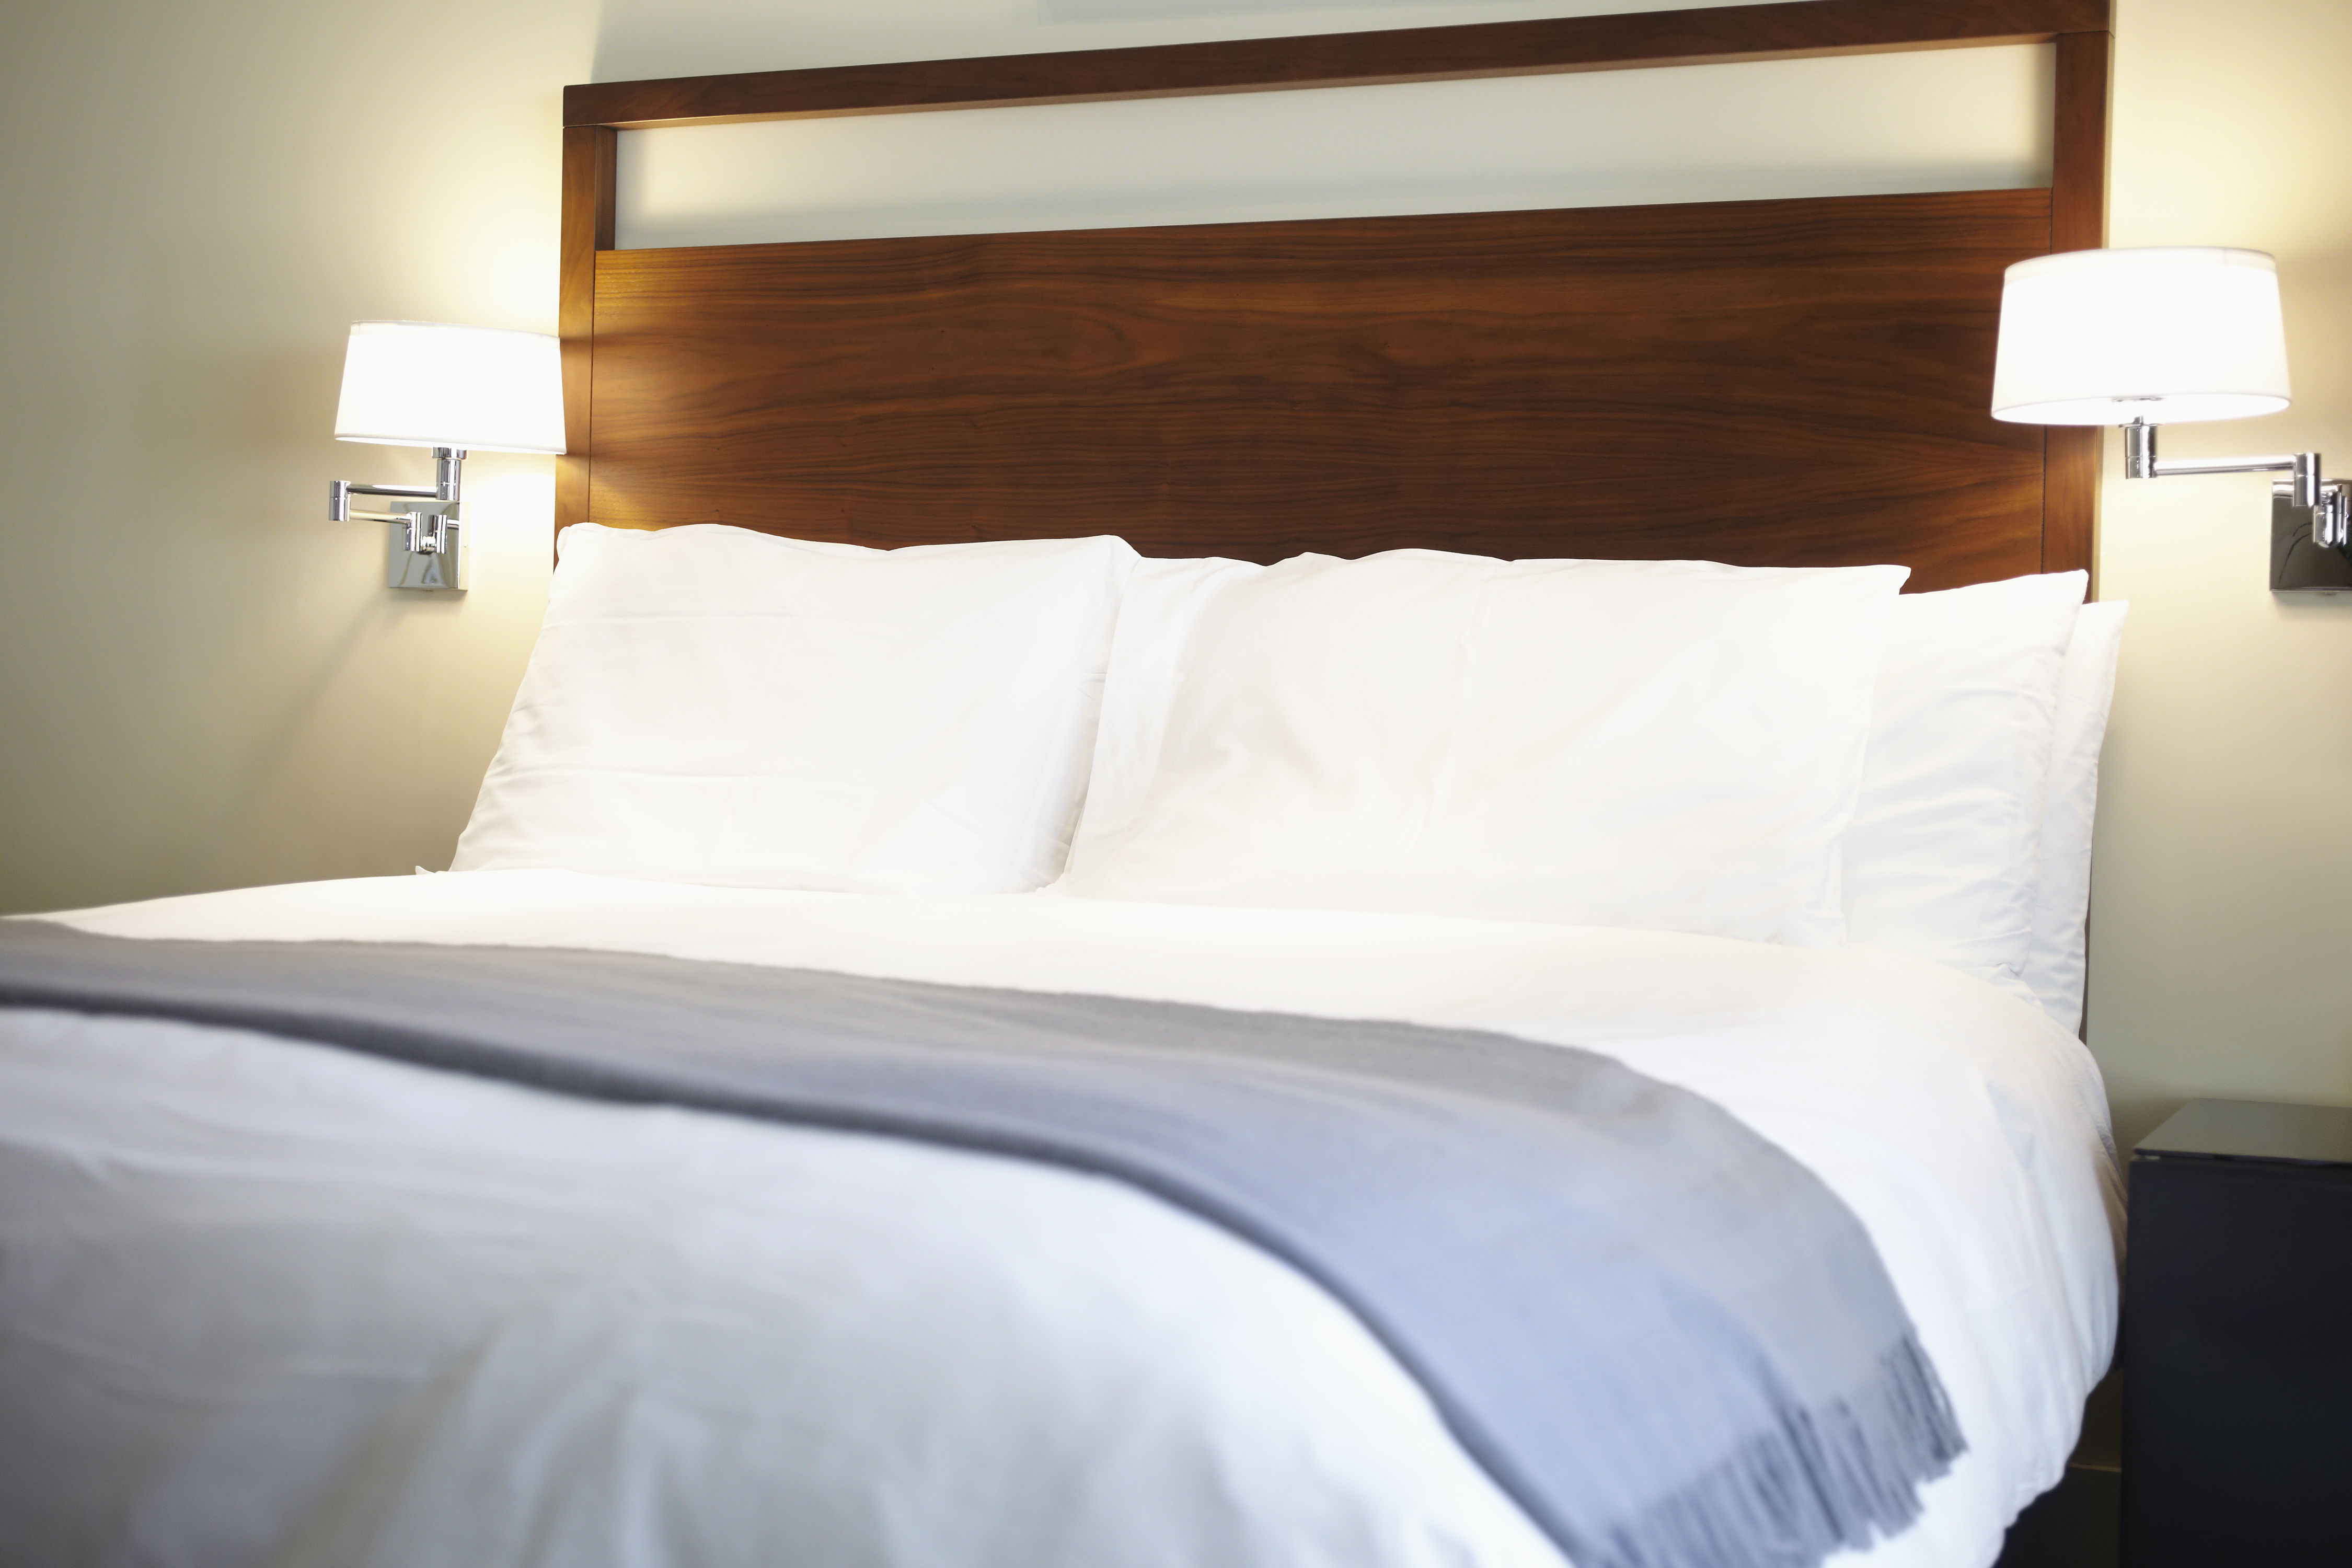 How To Spot Bed Bugs In Your Hotel Before It's Too Late